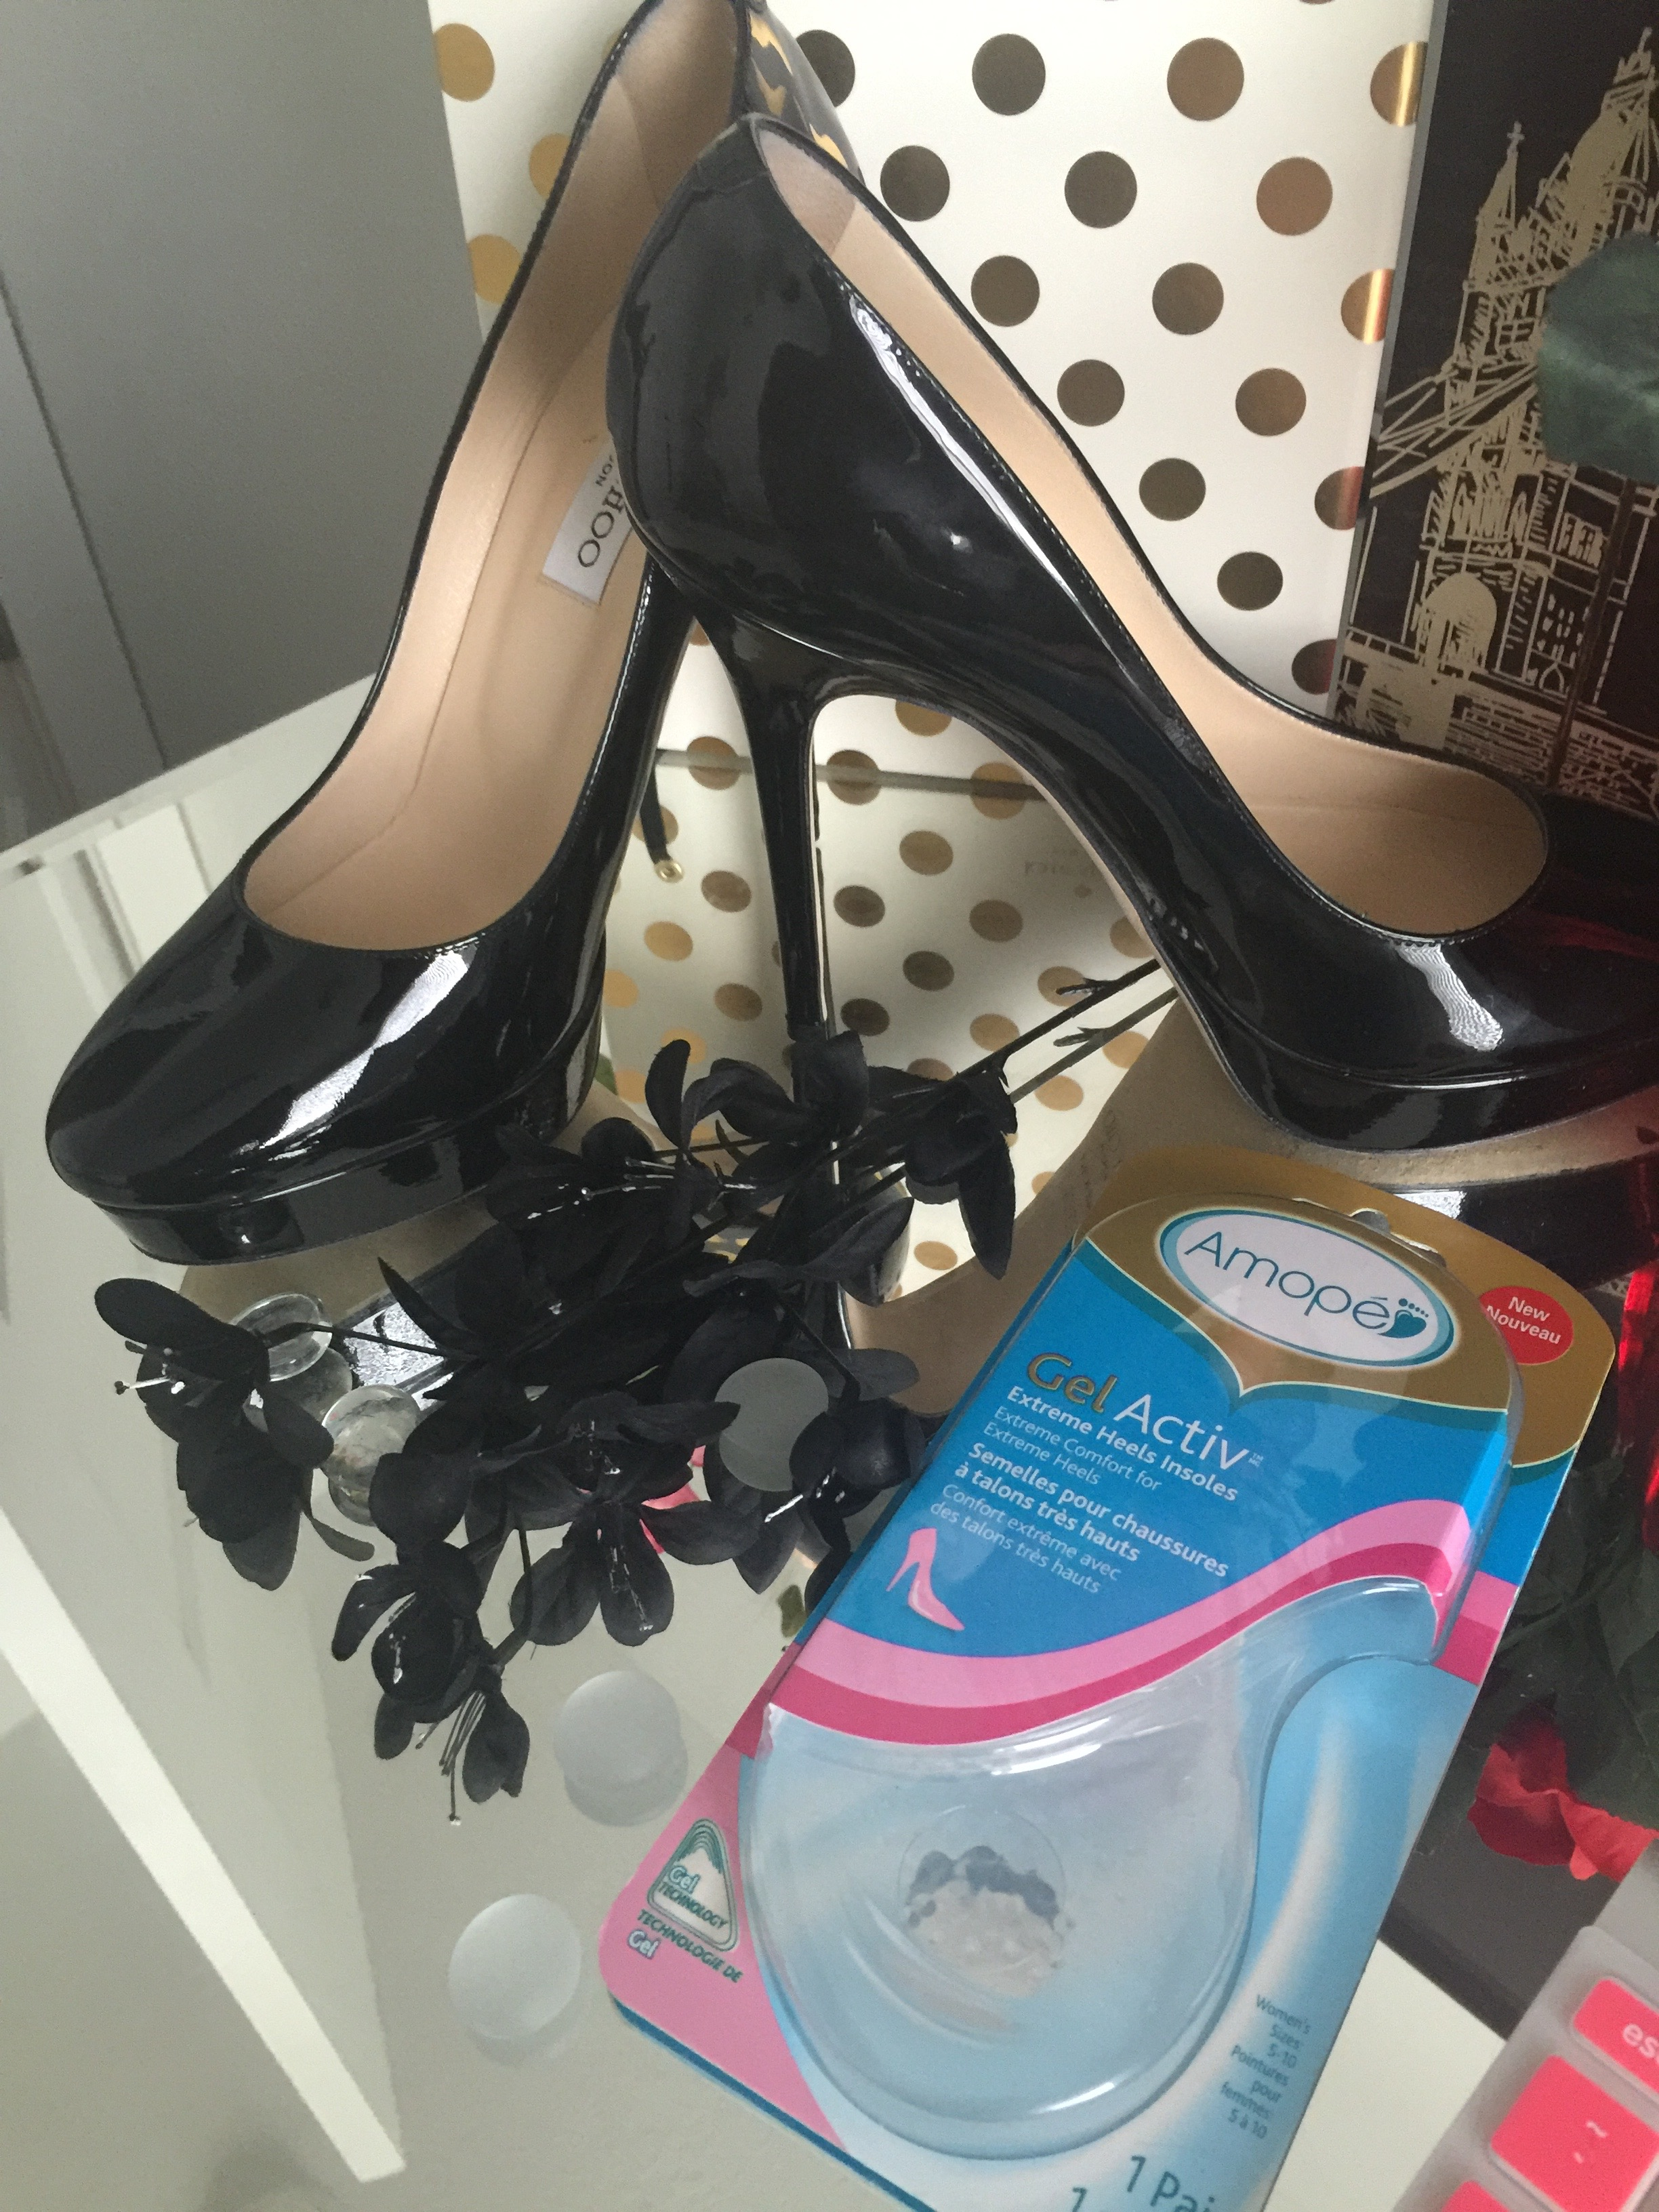 87e49cbd2e Interested in trying out Amopé Gel Activ Insoles, and turning your favorite  pair of heels into sneakers? Check them out at your Nearest Target and  Don't ...